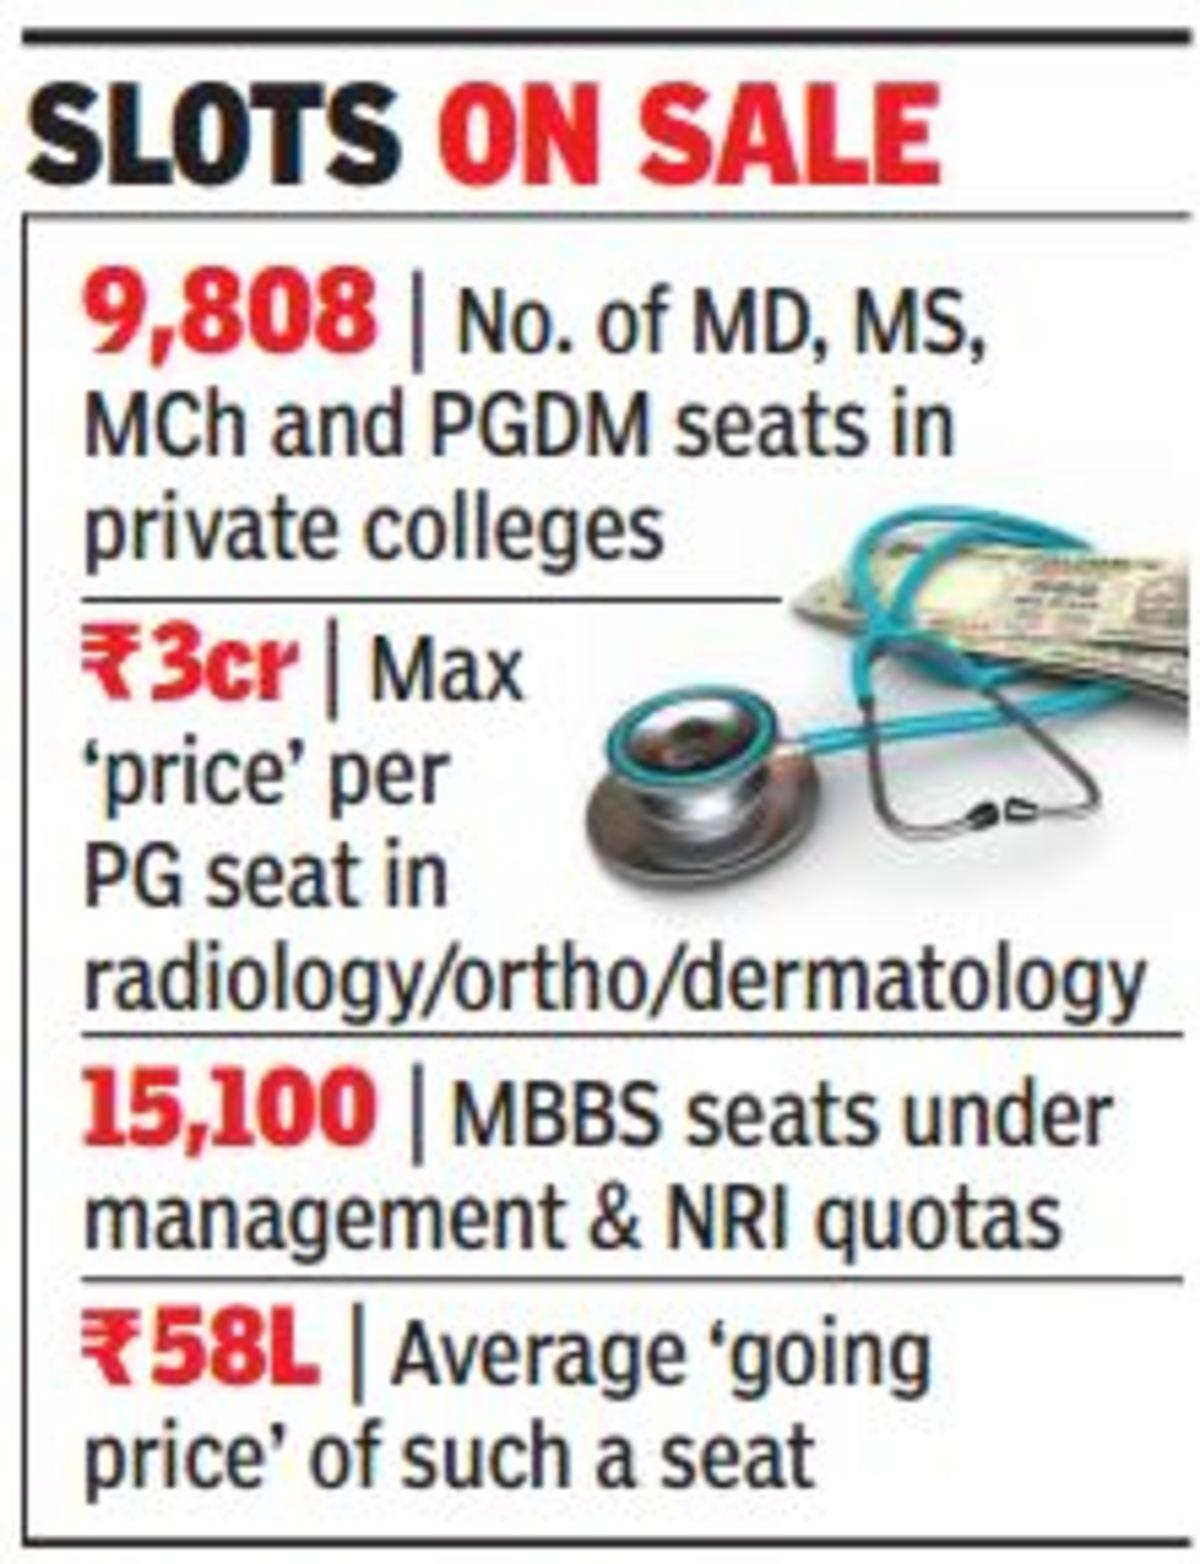 Black money quota: 25,000 MBBS, PG seats at Rs 12,000 crore | India